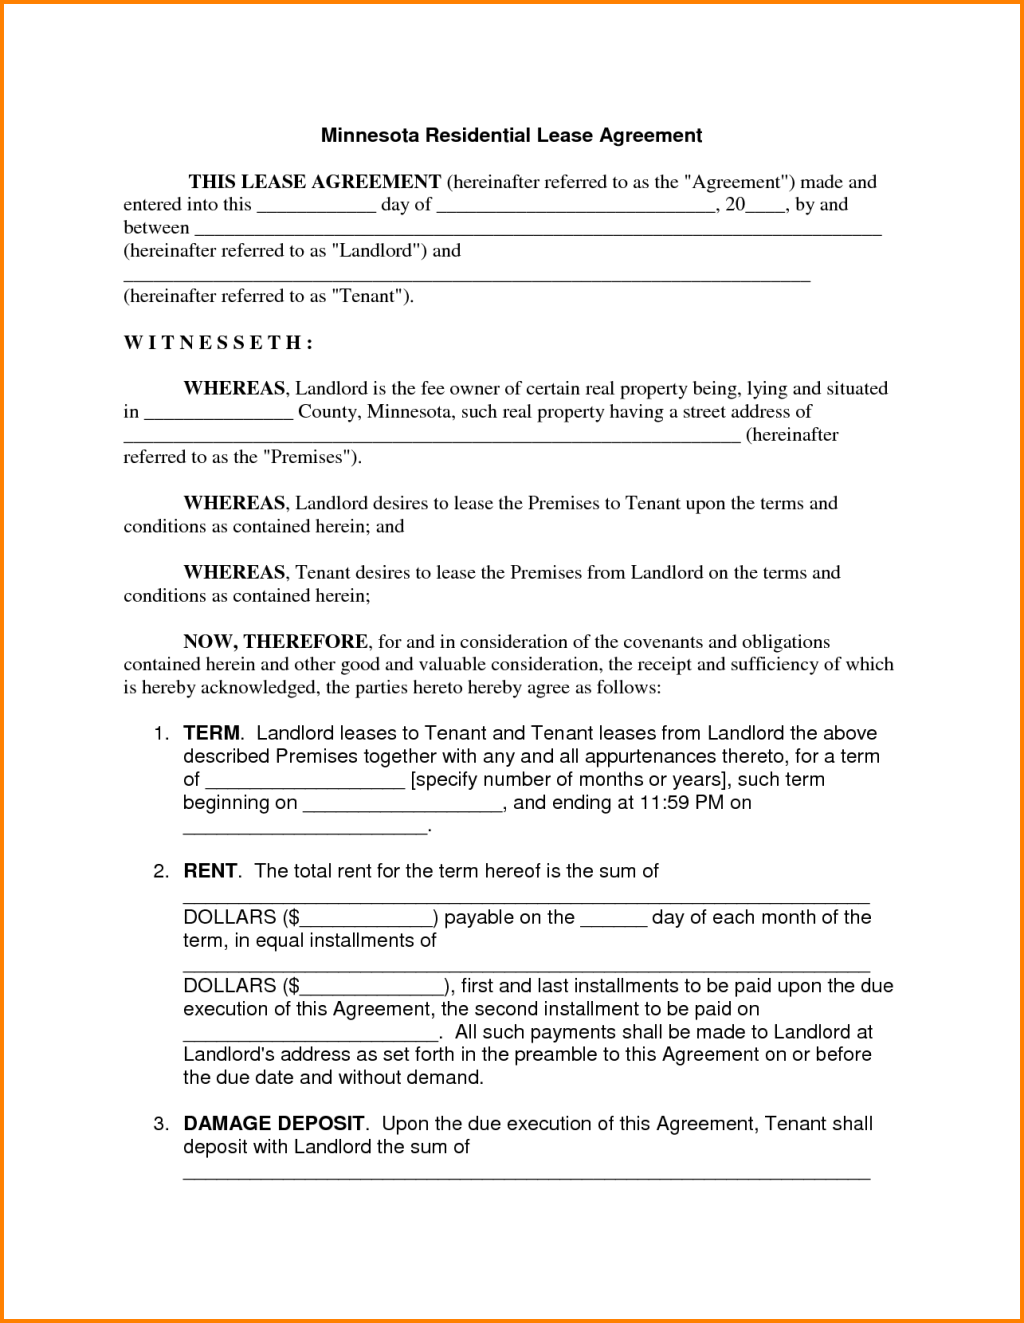 Free Download Minnesota Residential Lease Agreement Template With